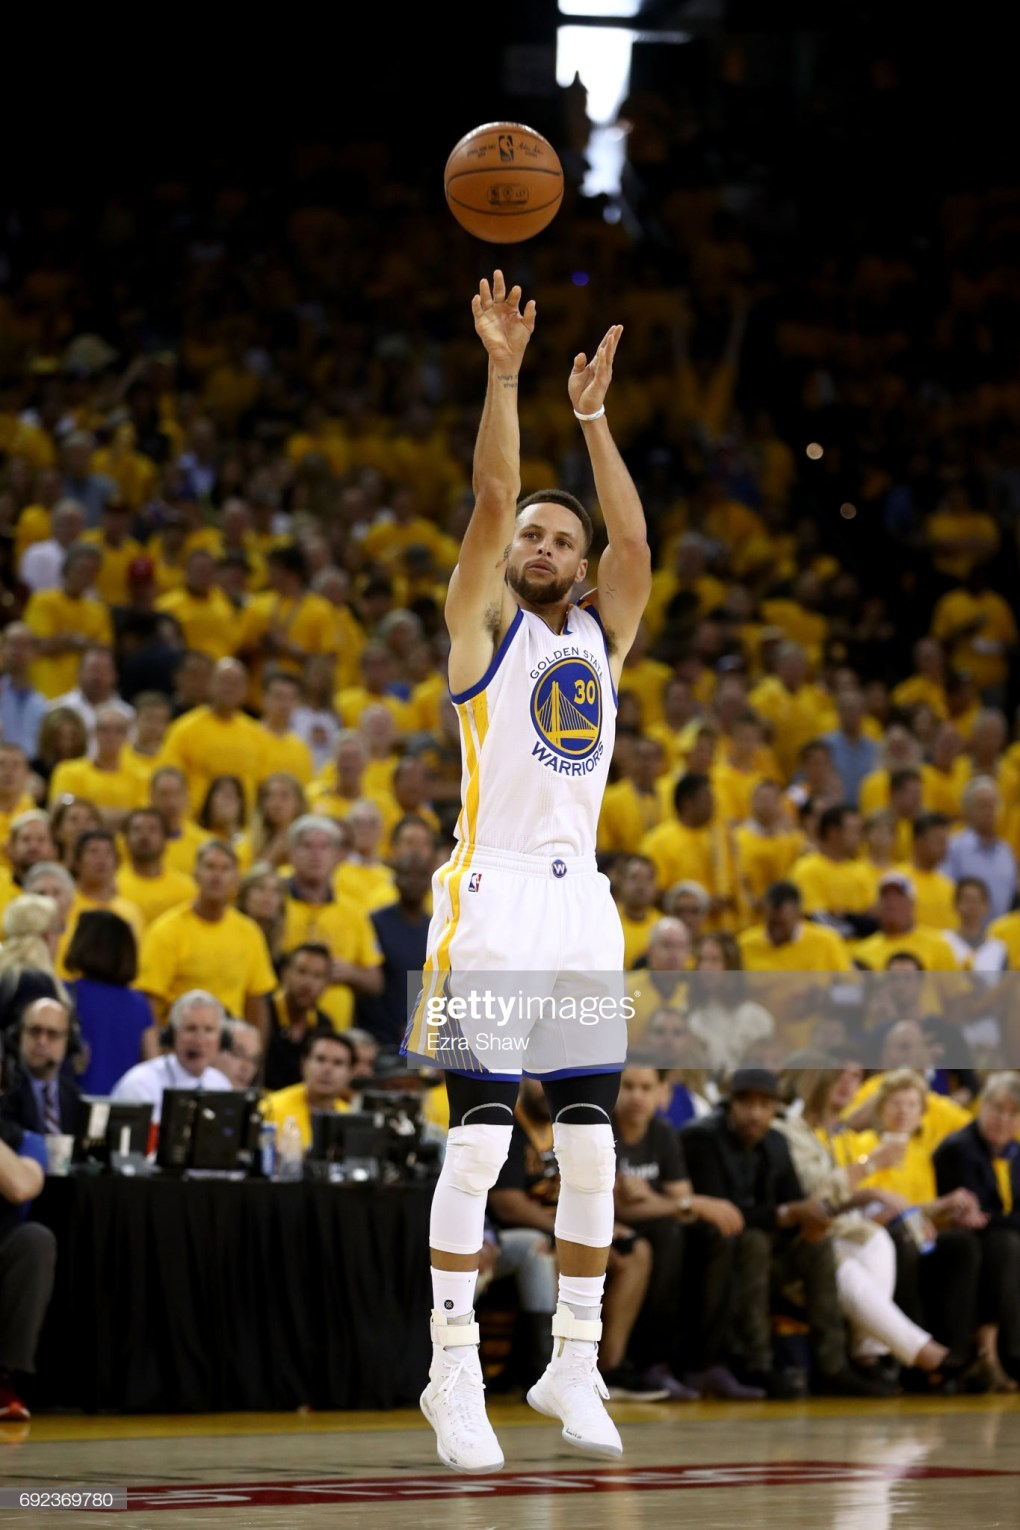 Stephen Curry at home Shooting a 3-point shot